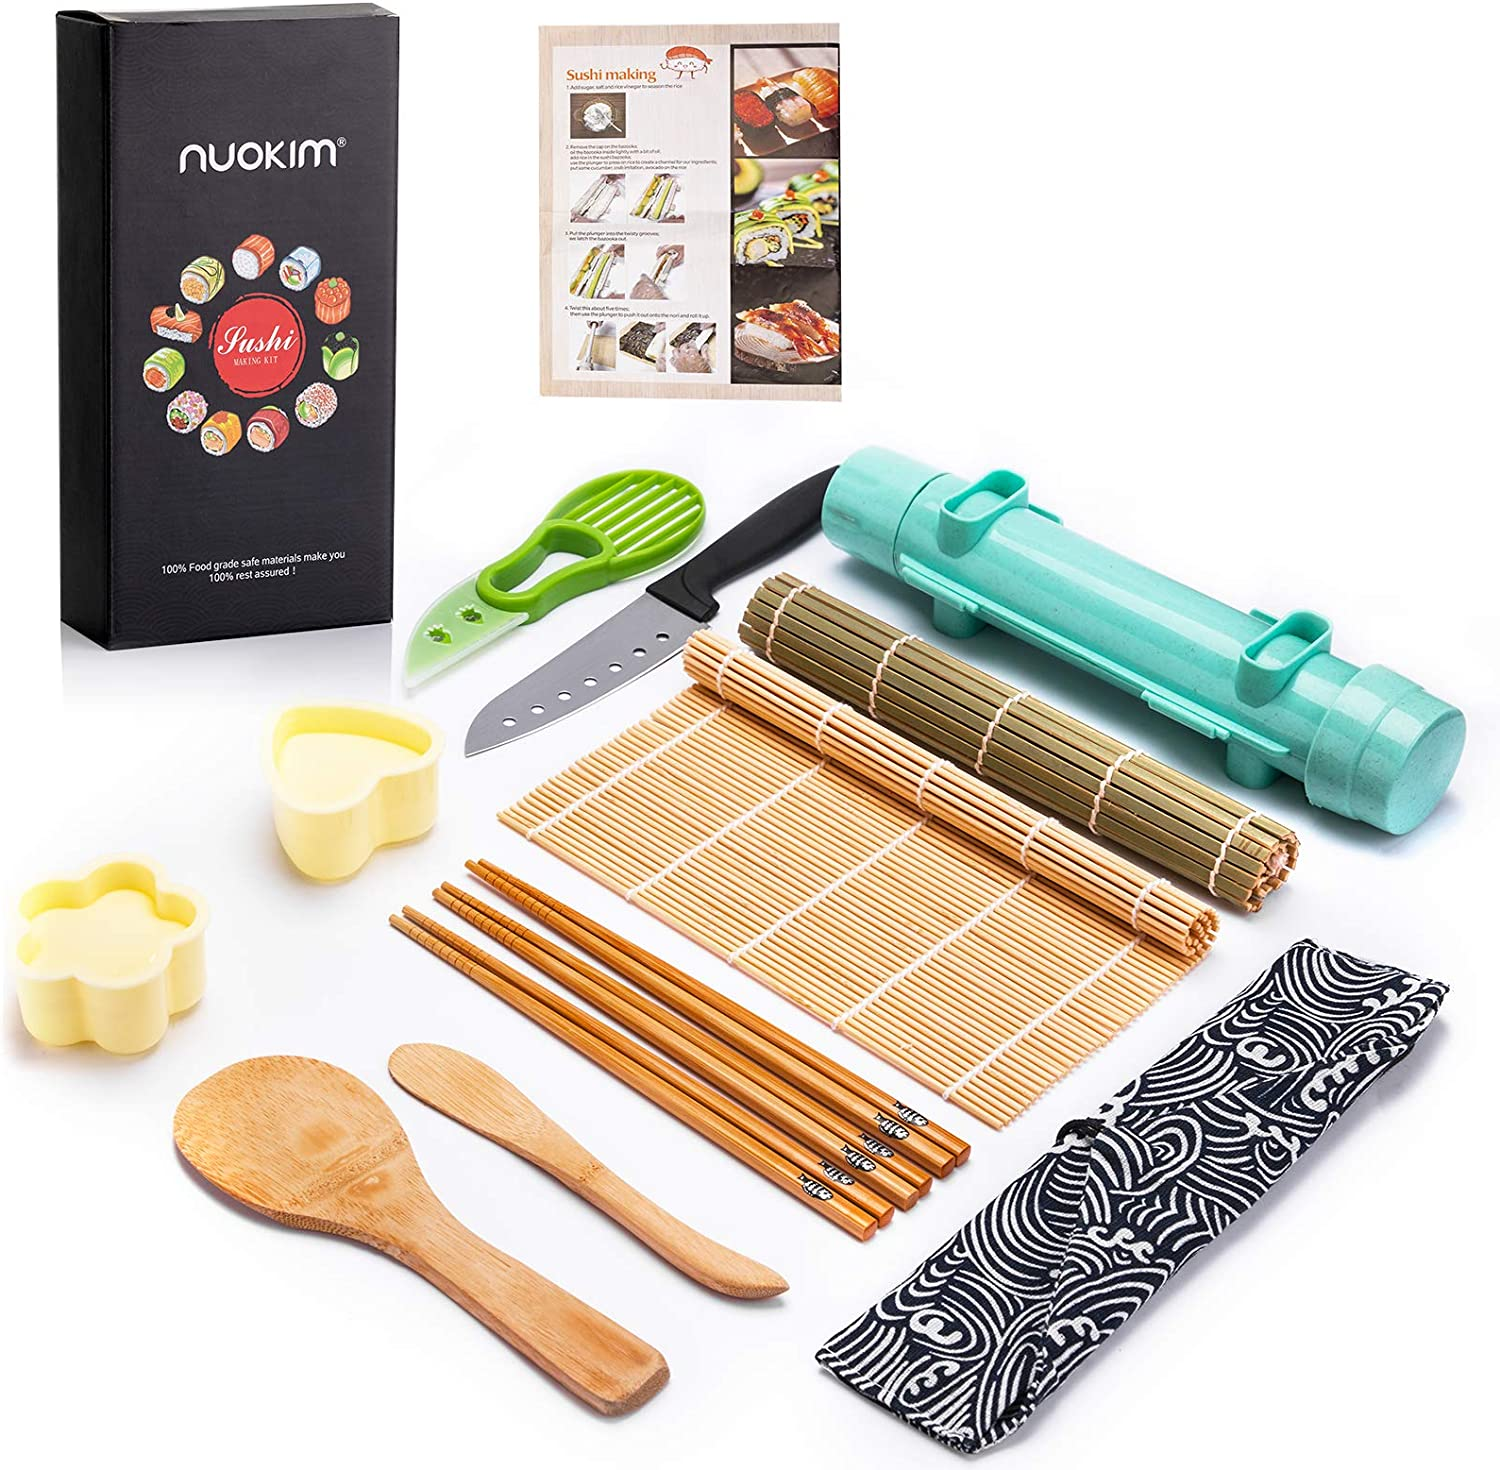 Nuokim Sushi Making Kit,Sushi Mat,Sushi Bazooka All in One Sushi Maker with Bamboo Mat,Sushi Knife, Paddle, Spreader,Chopsticks, Rice Molds,Beginners' Guide Book, Sushi Roller for Family Fun